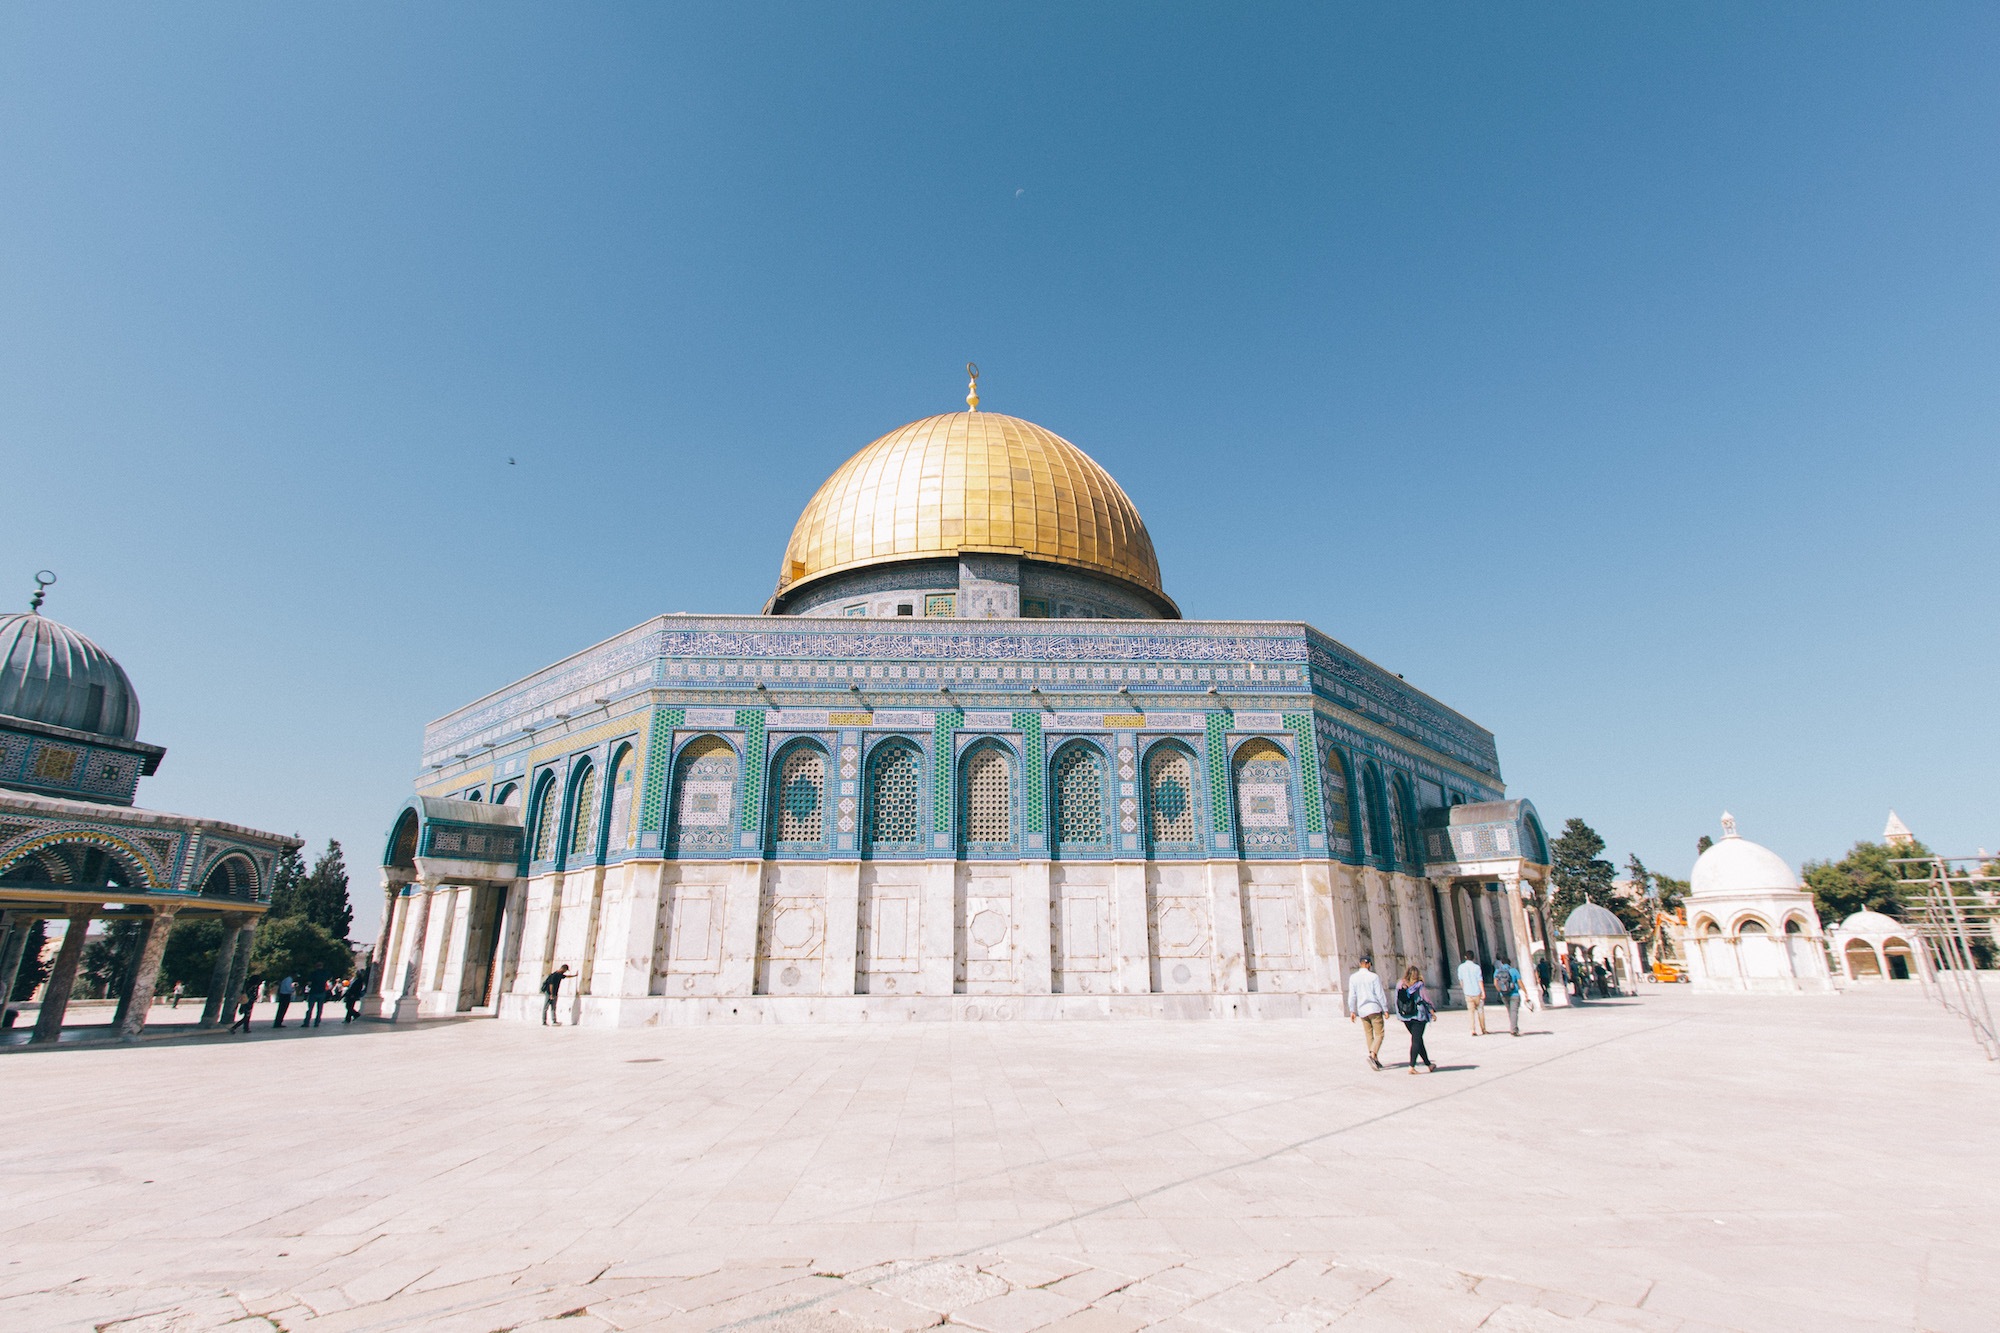 Dome of the Rock - No matter your religious beliefs this building, located on the top of Temple Mount, is absolutely stunning to look at and walk around.